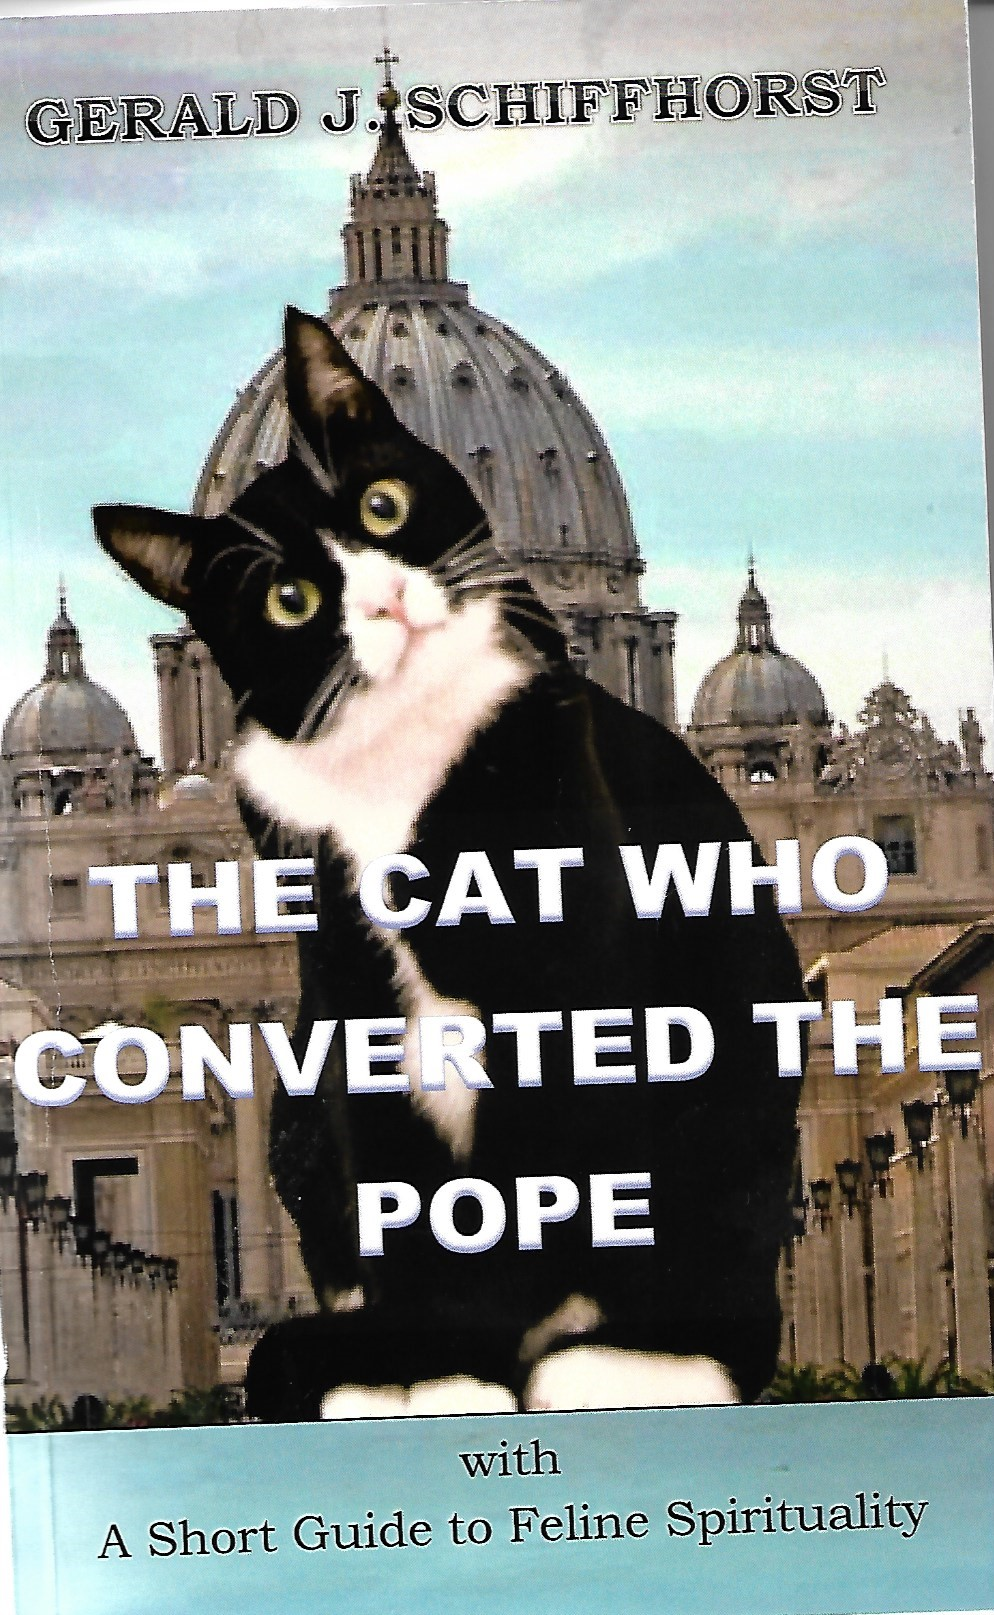 The cat who converted the Pope by Gerald J Schiffhorst